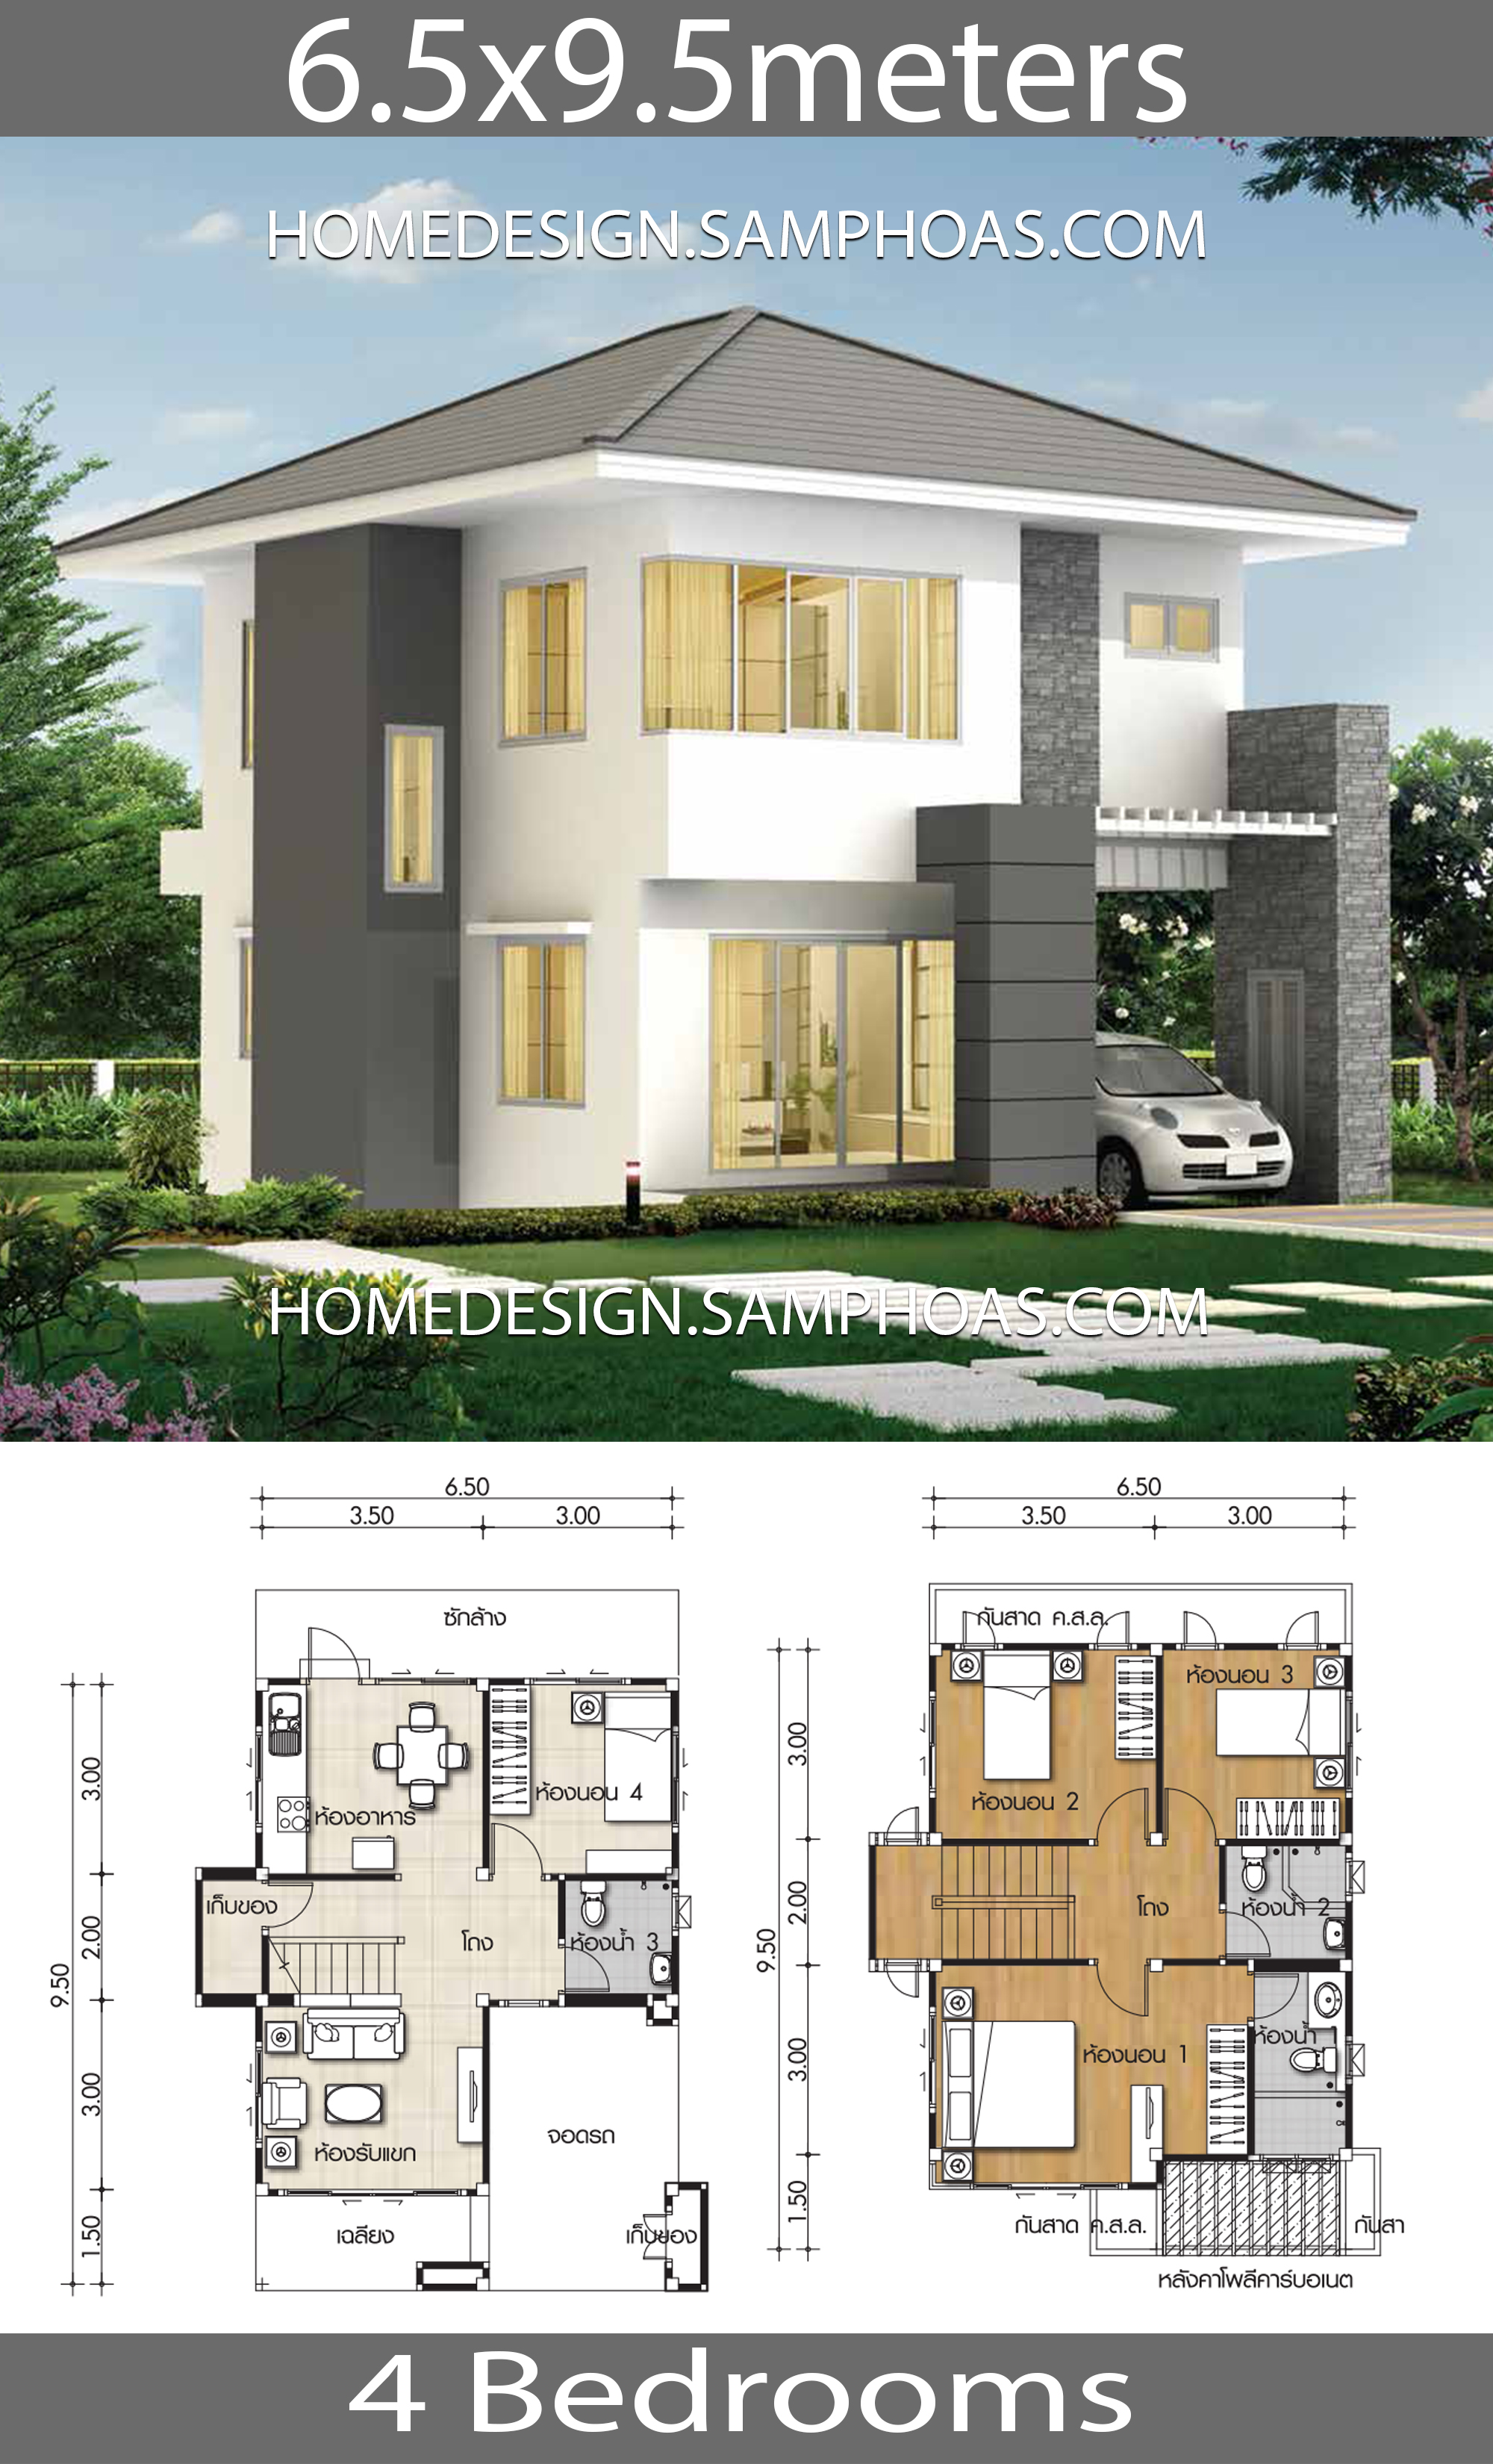 small house plans 65x95m with 4 bedrooms  house plans 3d